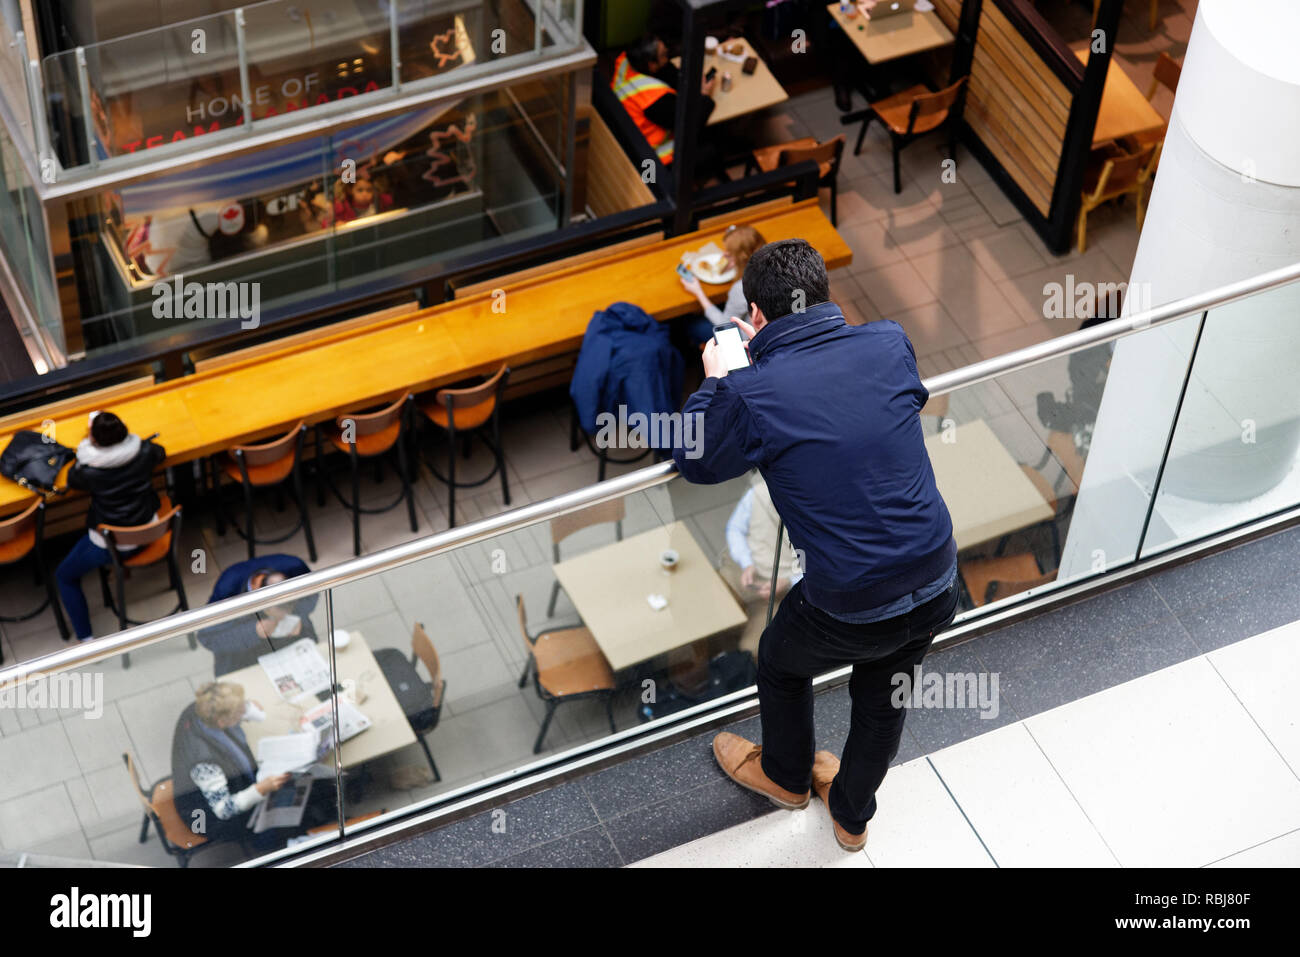 A man using a cellphone in a shopping mall - Stock Image